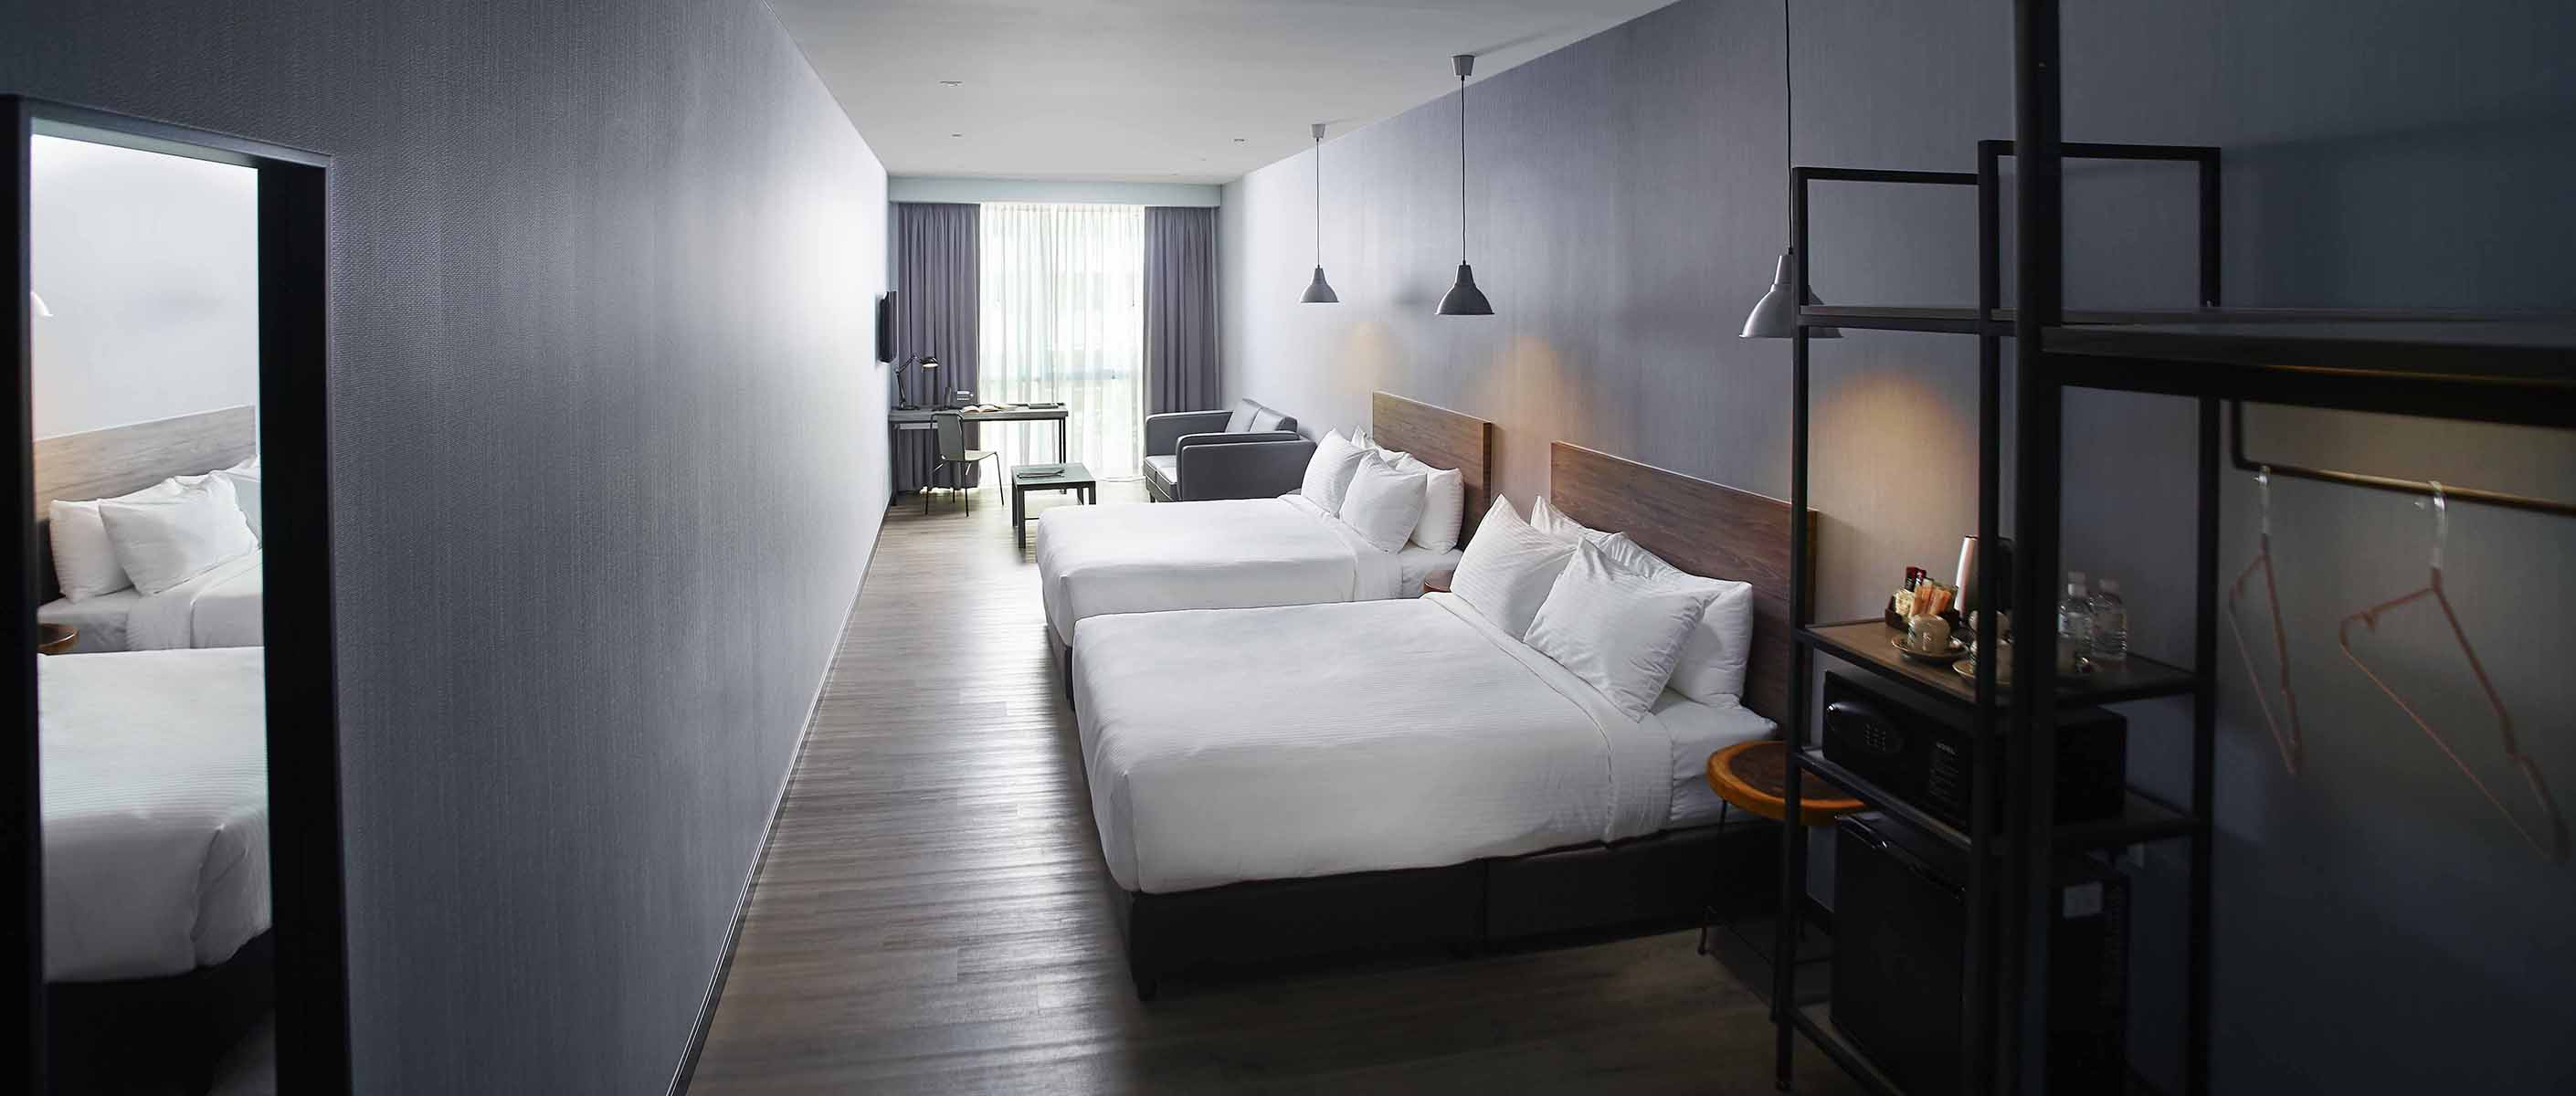 Urban h hotel penang for Design hotel urban